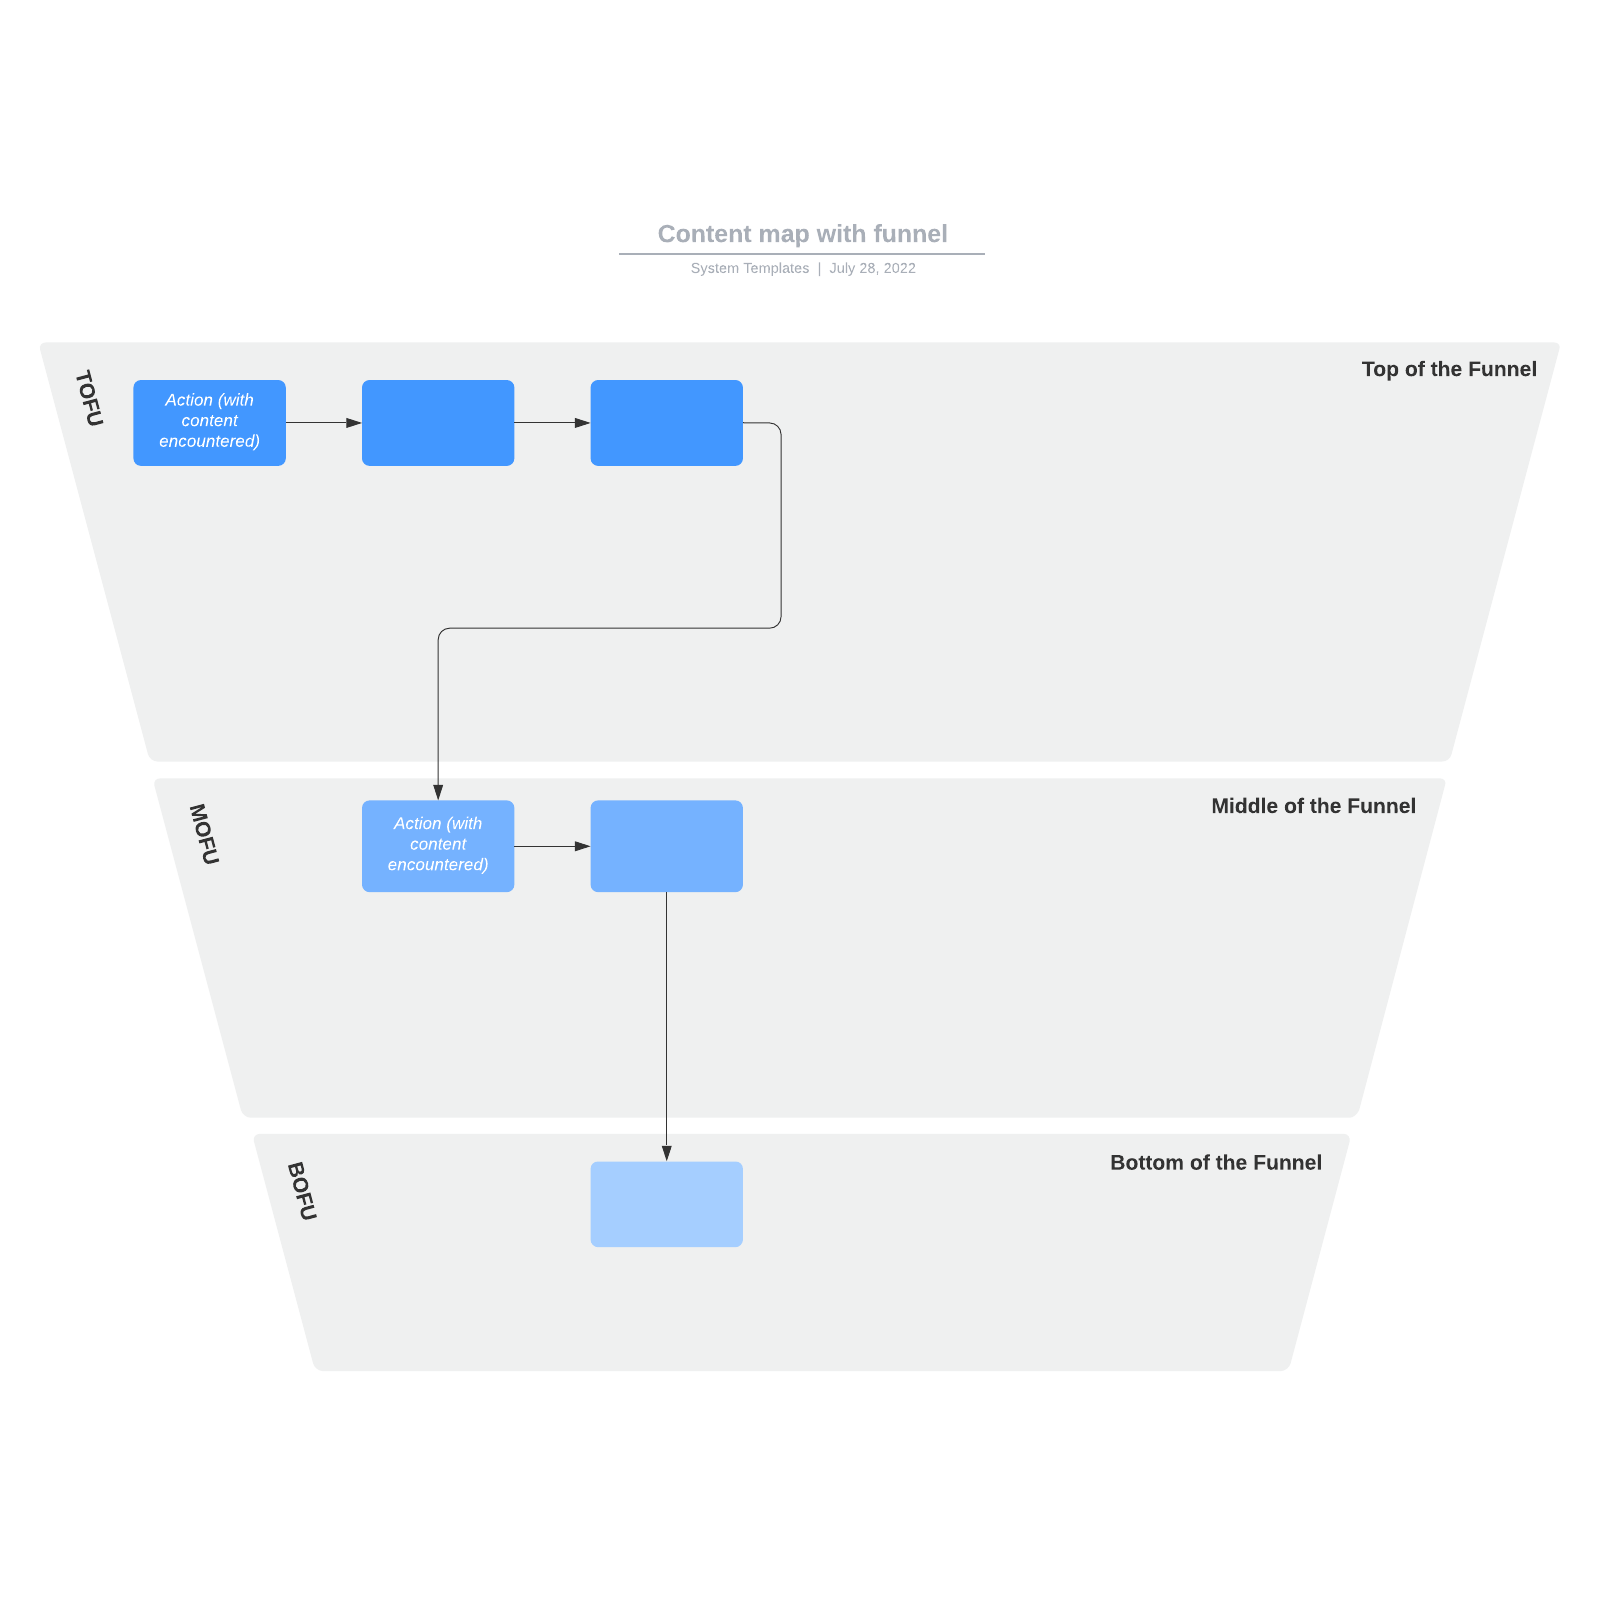 Content map with funnel